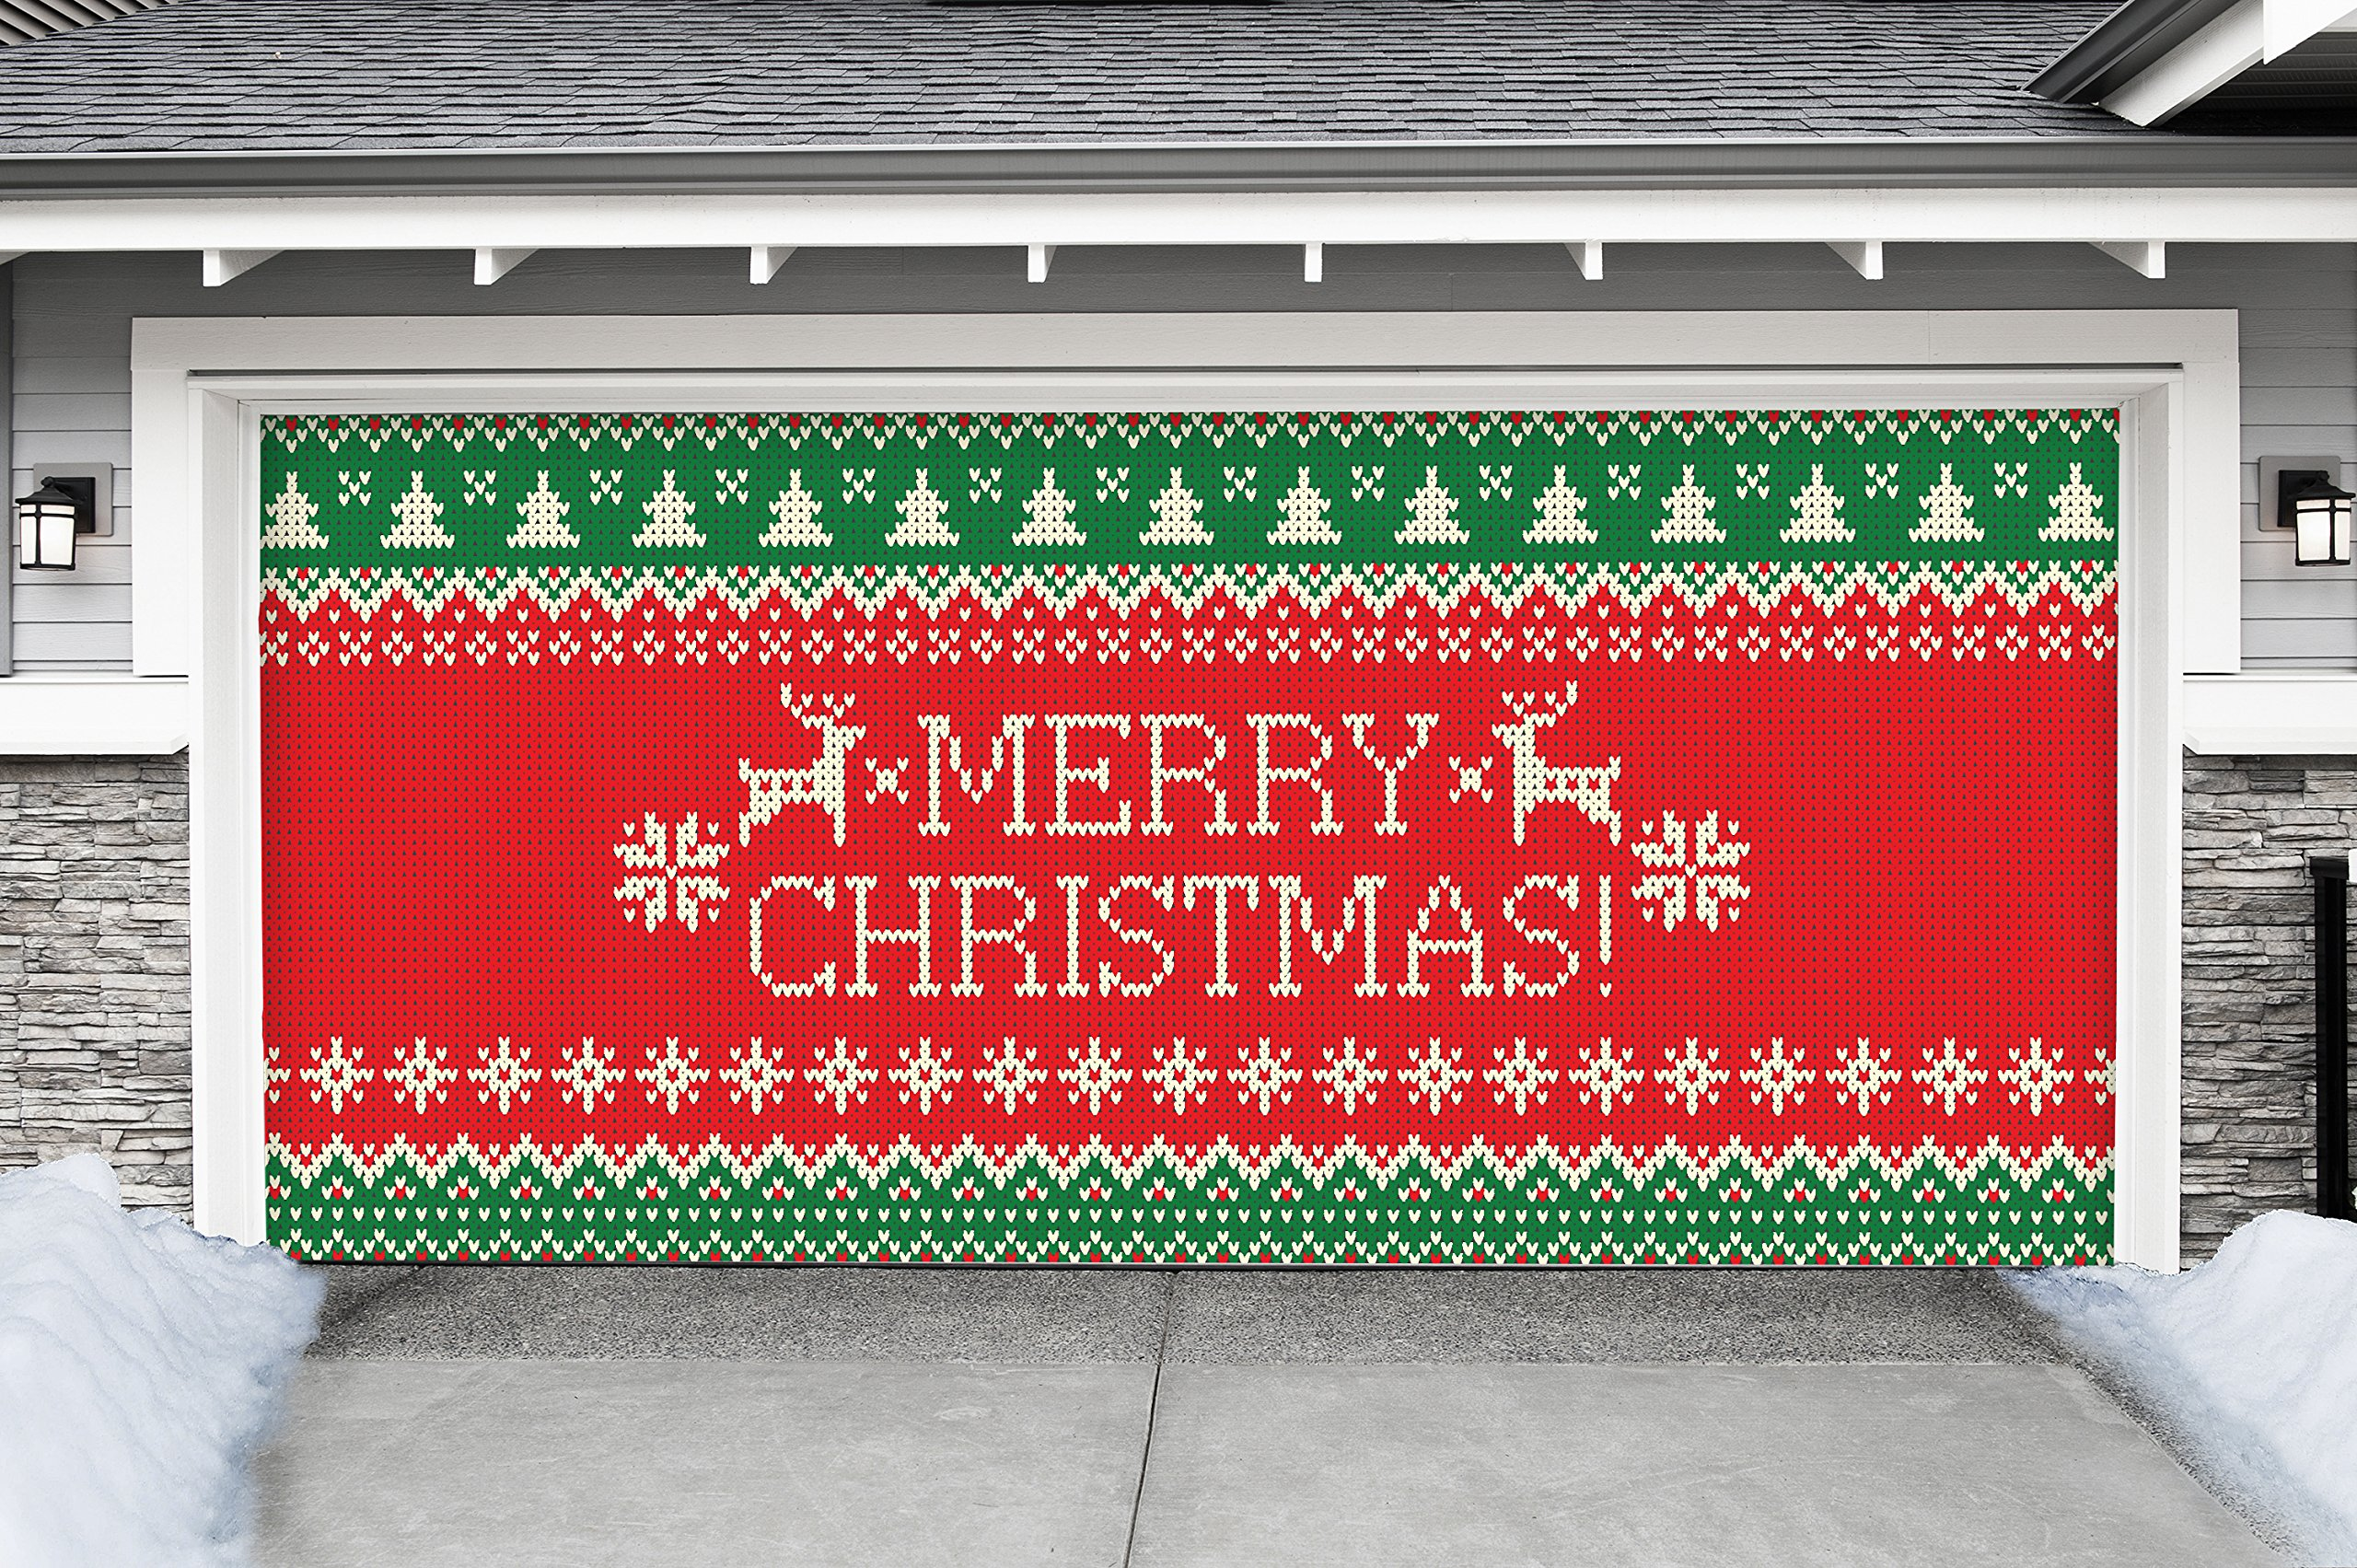 Outdoor Christmas Holiday Garage Door Banner Cover Mural Décoration - Ugly Christmas Sweater Merry Christmas - Outdoor Christmas Holiday Garage Door Banner Décor Sign 7'x16'